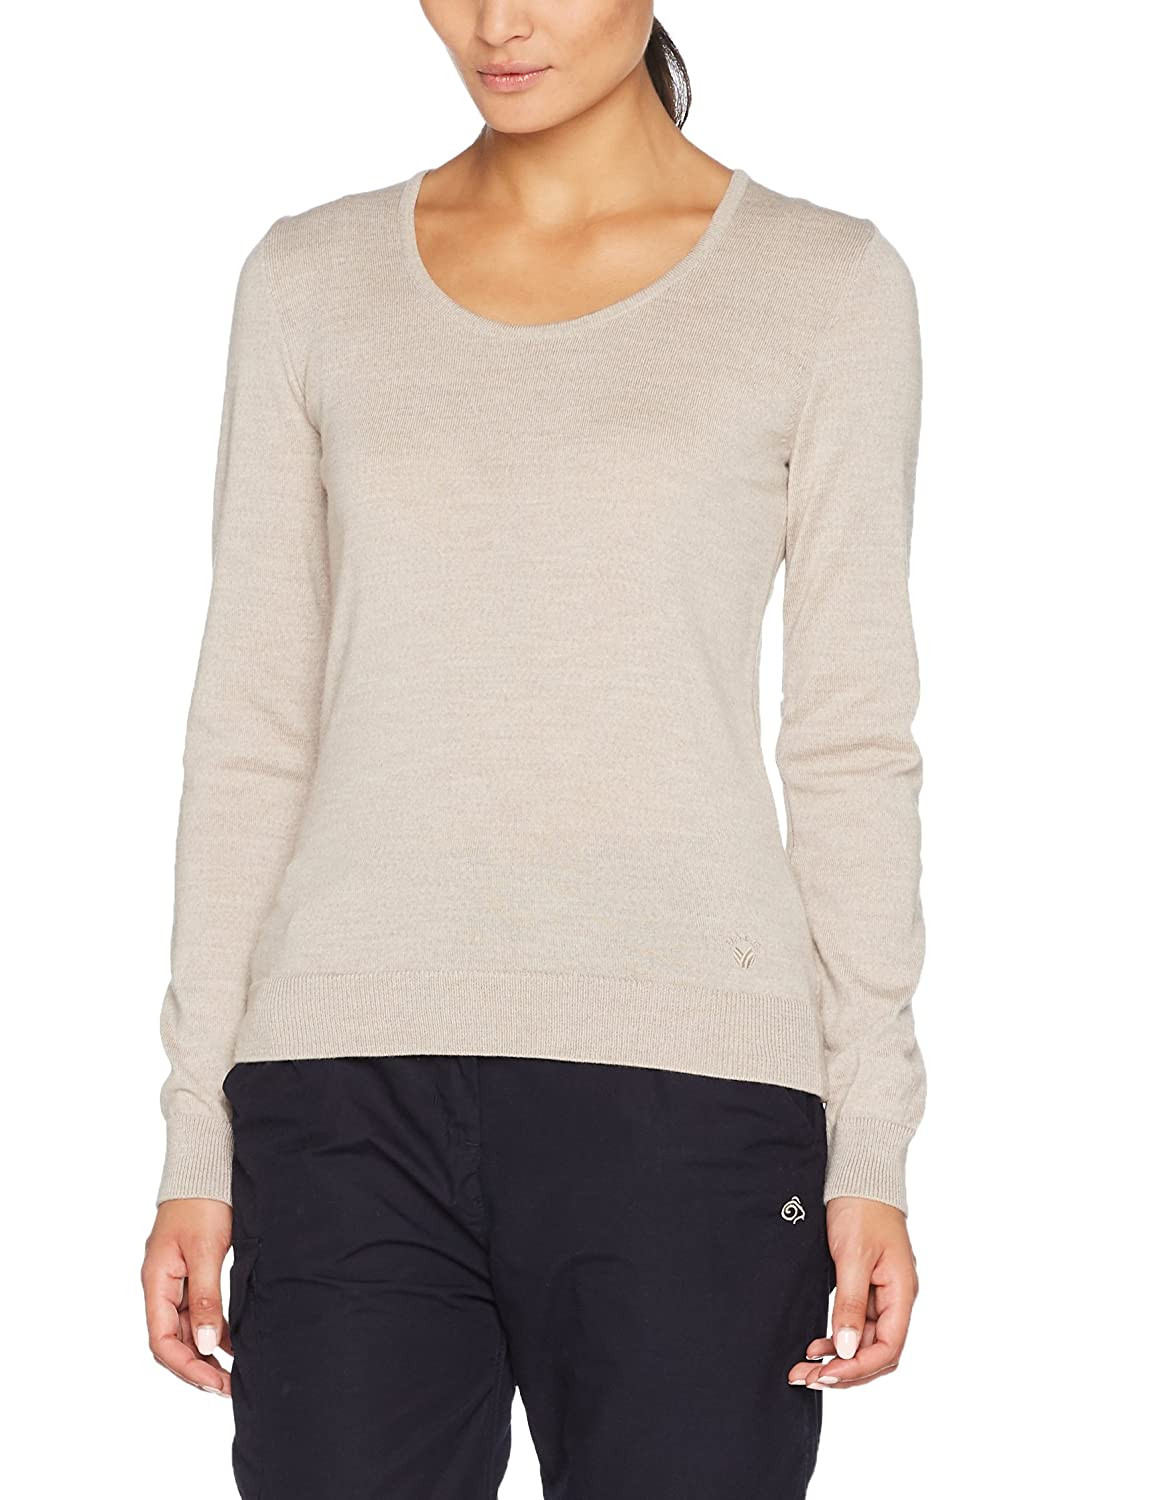 TALLA S. Dale of Norway Astrid Femenina Sweater